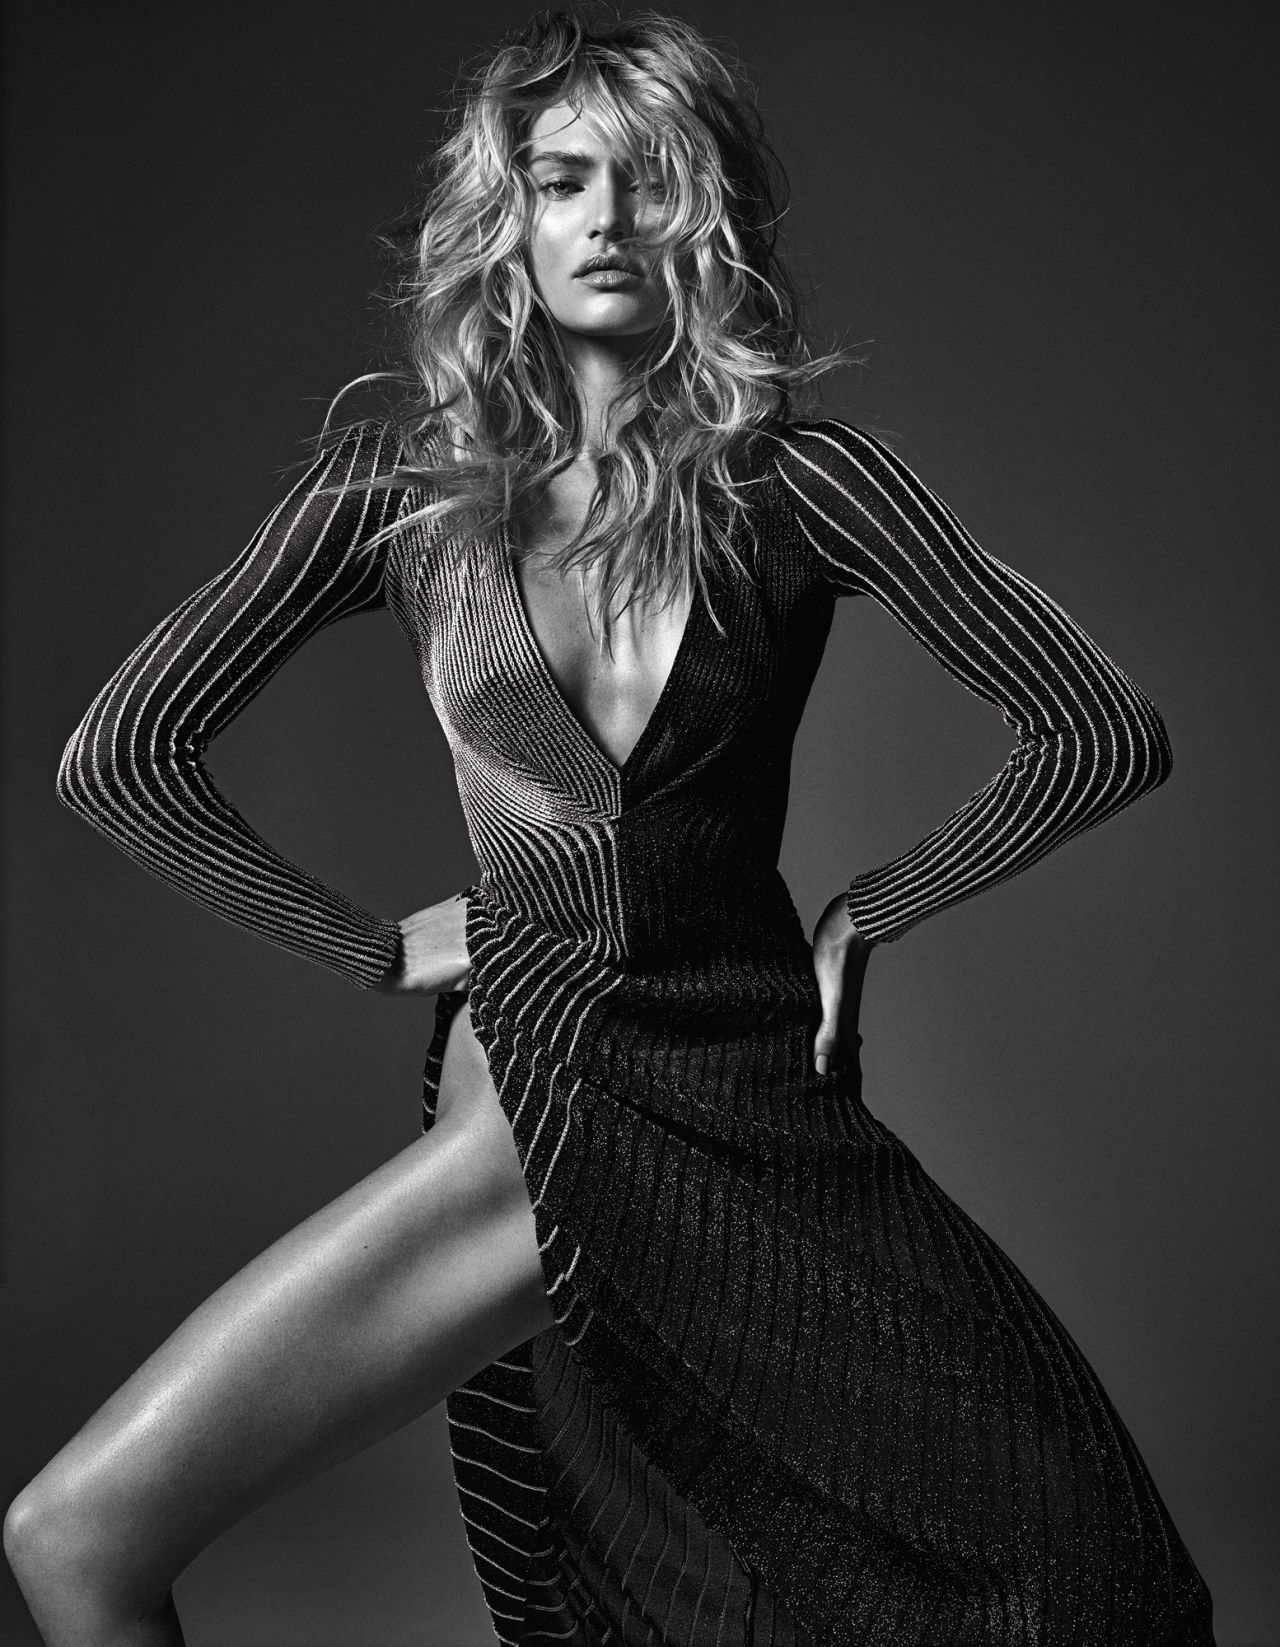 candice-swanepoel-w-magazine-march-2014-by-mario-sorrenti-_1